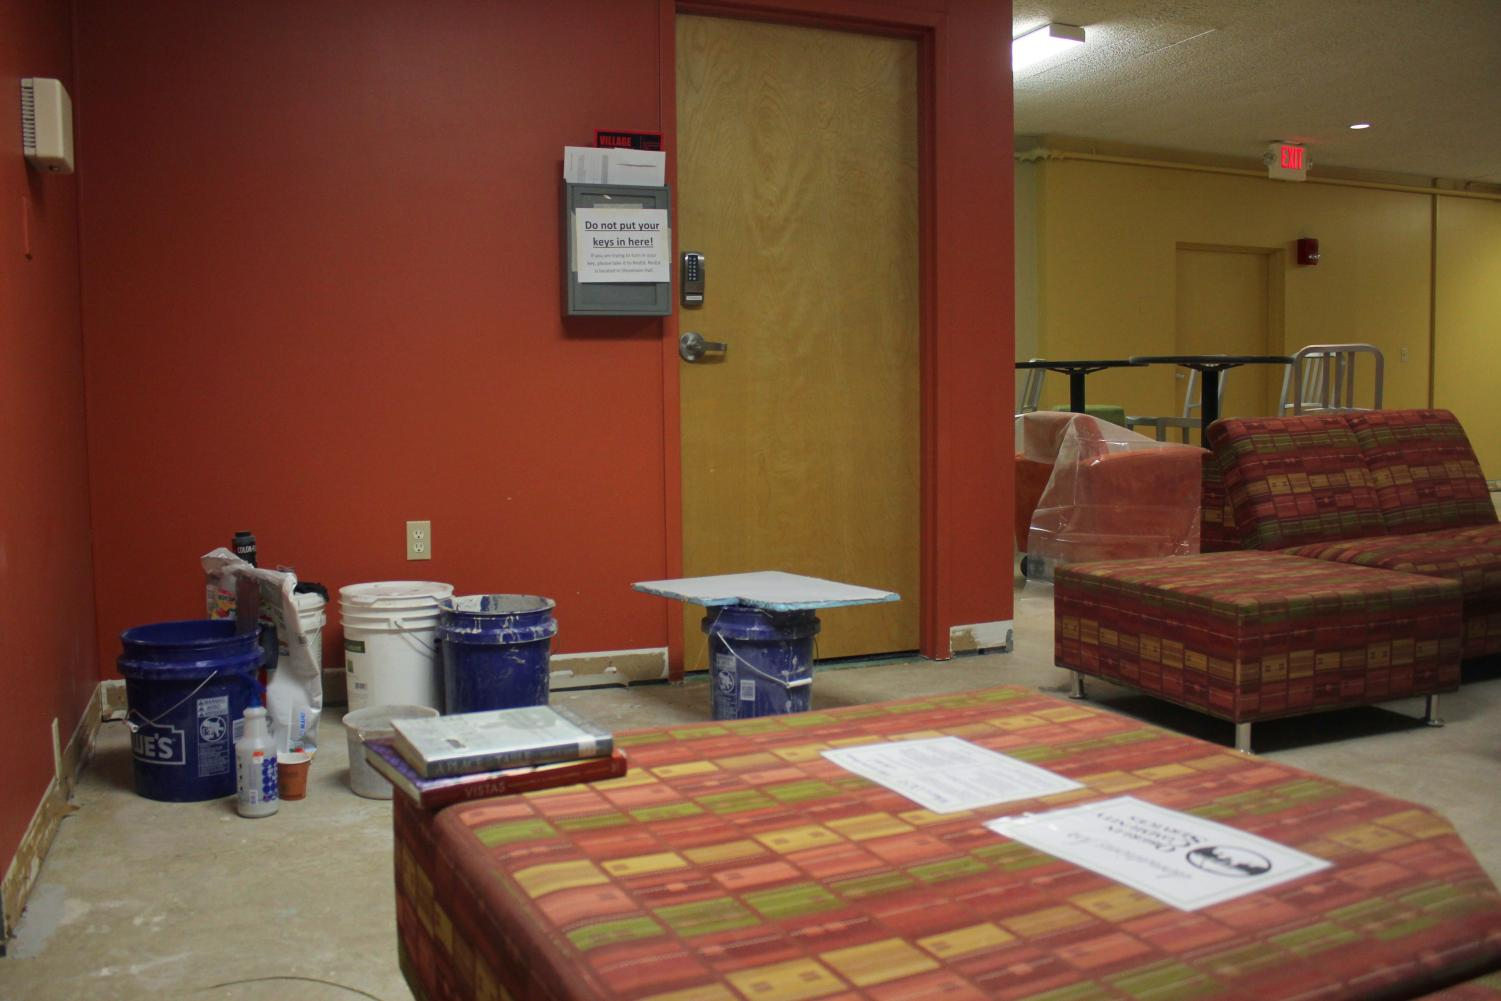 There are currently ongoing construction projects in Firelands Apartments Building, which some residents find disruptive.